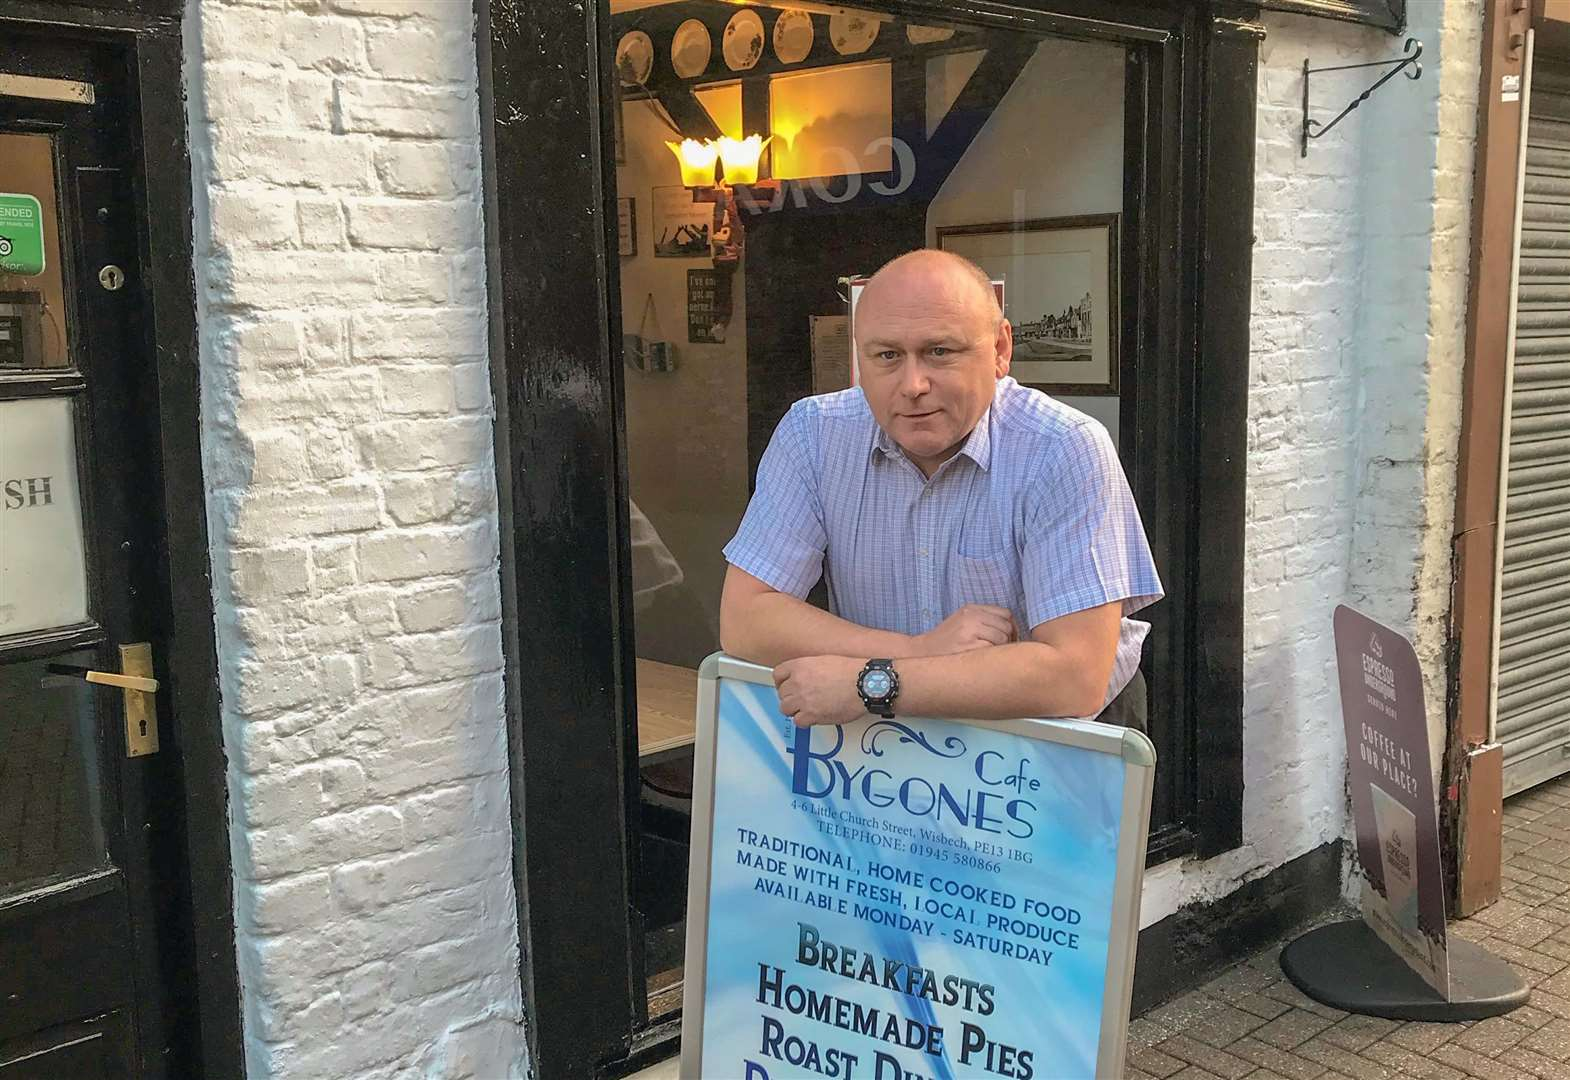 Bygones Café in Wisbech is opening its doors to the homeless with special evening run by 50 Backpacks charity volunteers